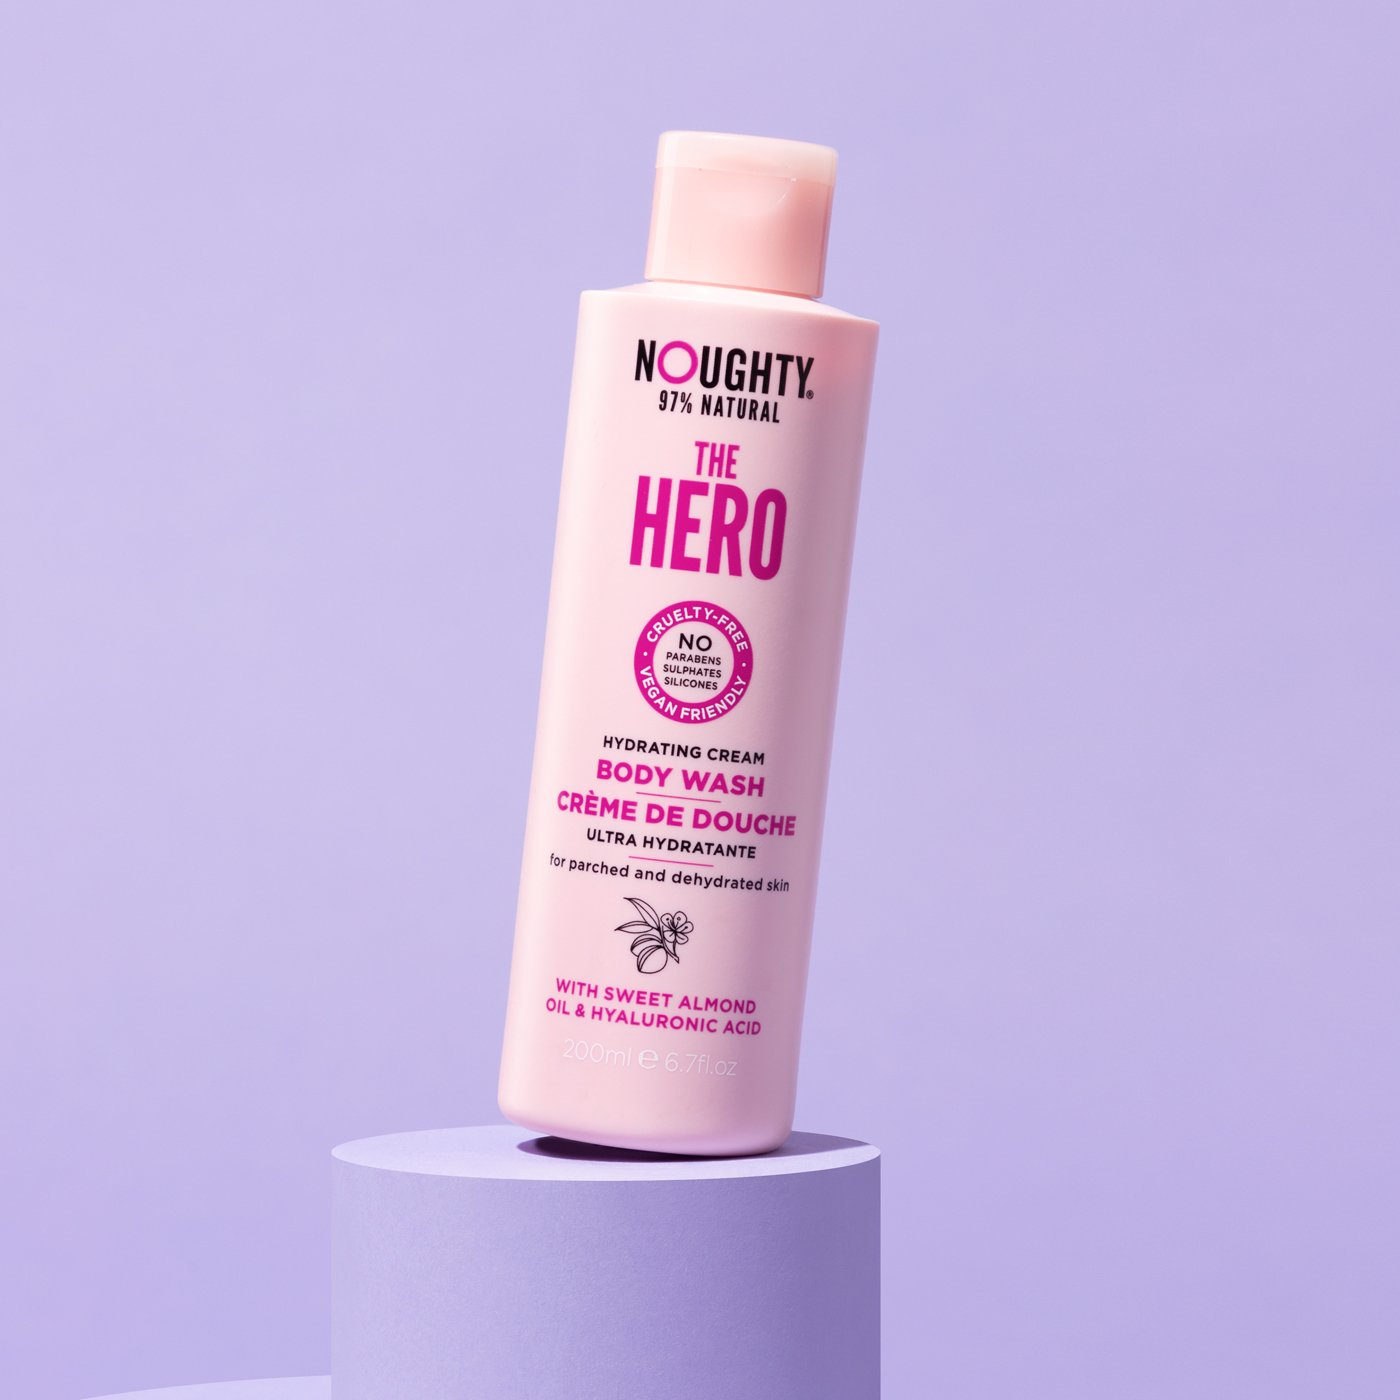 Noughty The Hero hydrating cream body wash for parched and dehydrated skin. Natural body care vegan cruelty free natural sulfate free paraben free